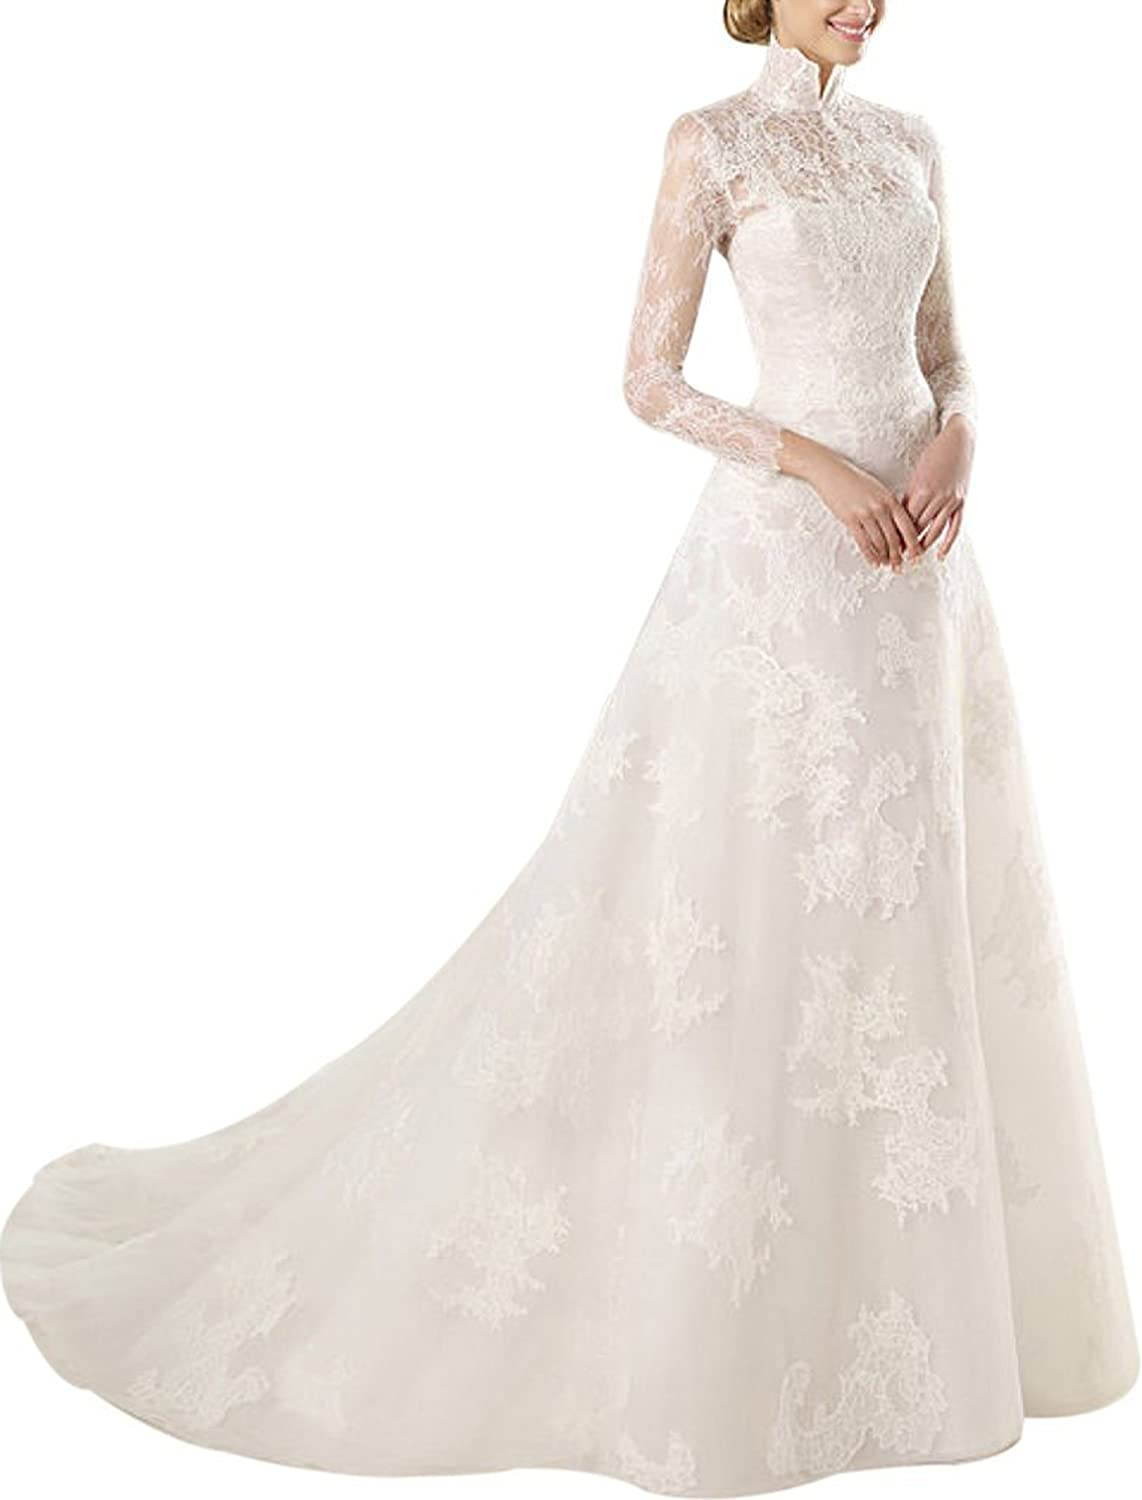 Ailimisi Neck White Long Lace Sleeves Beads Veil Train Wedding Dress Prom Gown